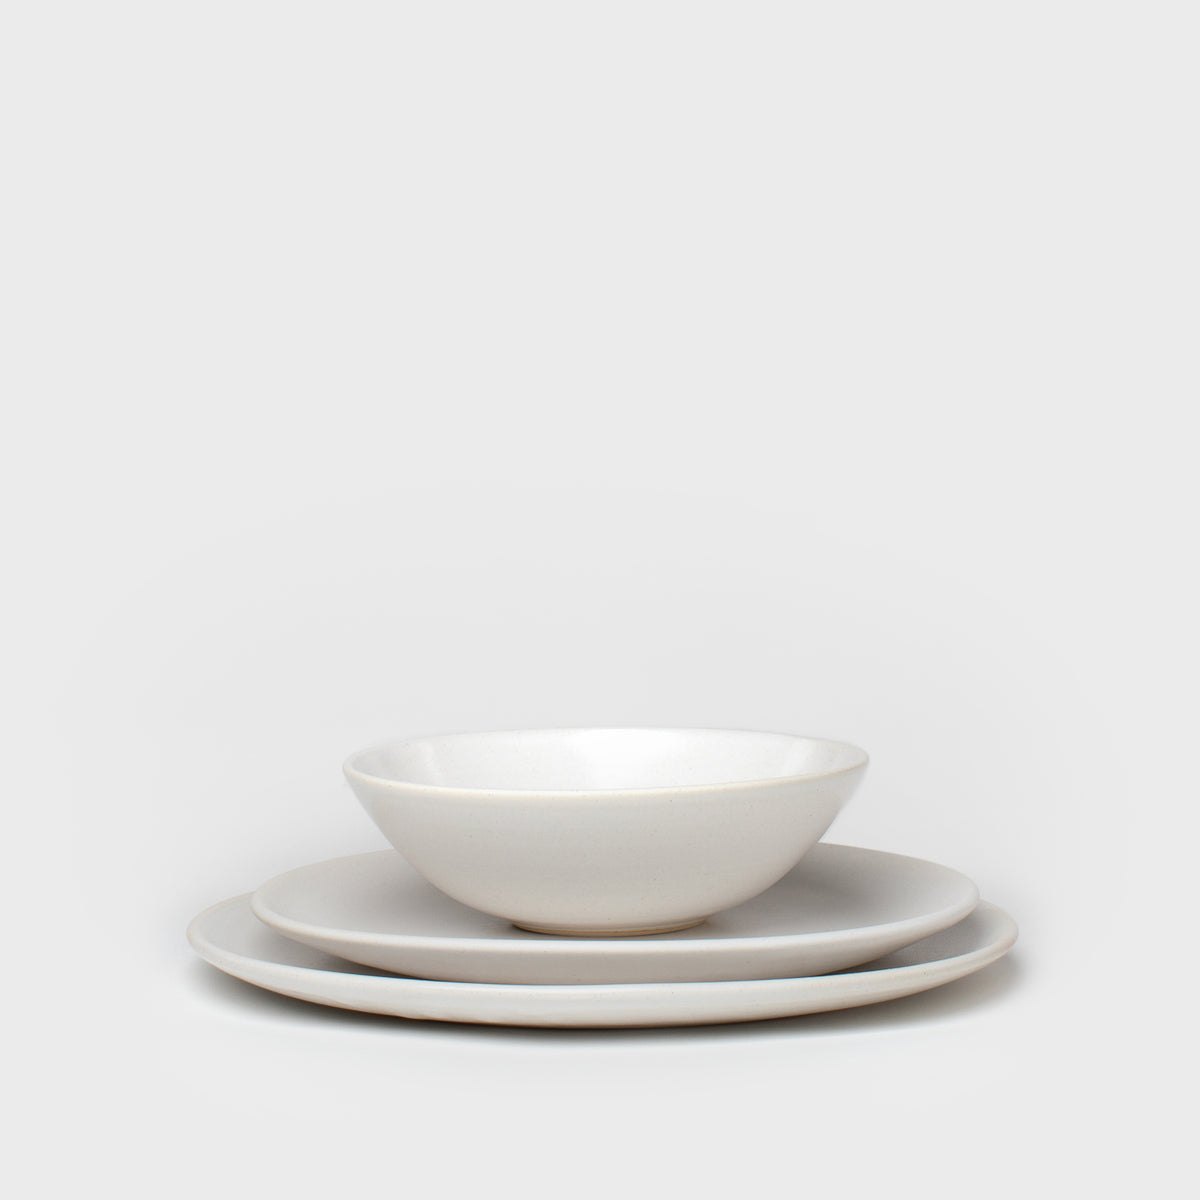 Load image into Gallery viewer, Salad Plate in White by Meghan Flynn